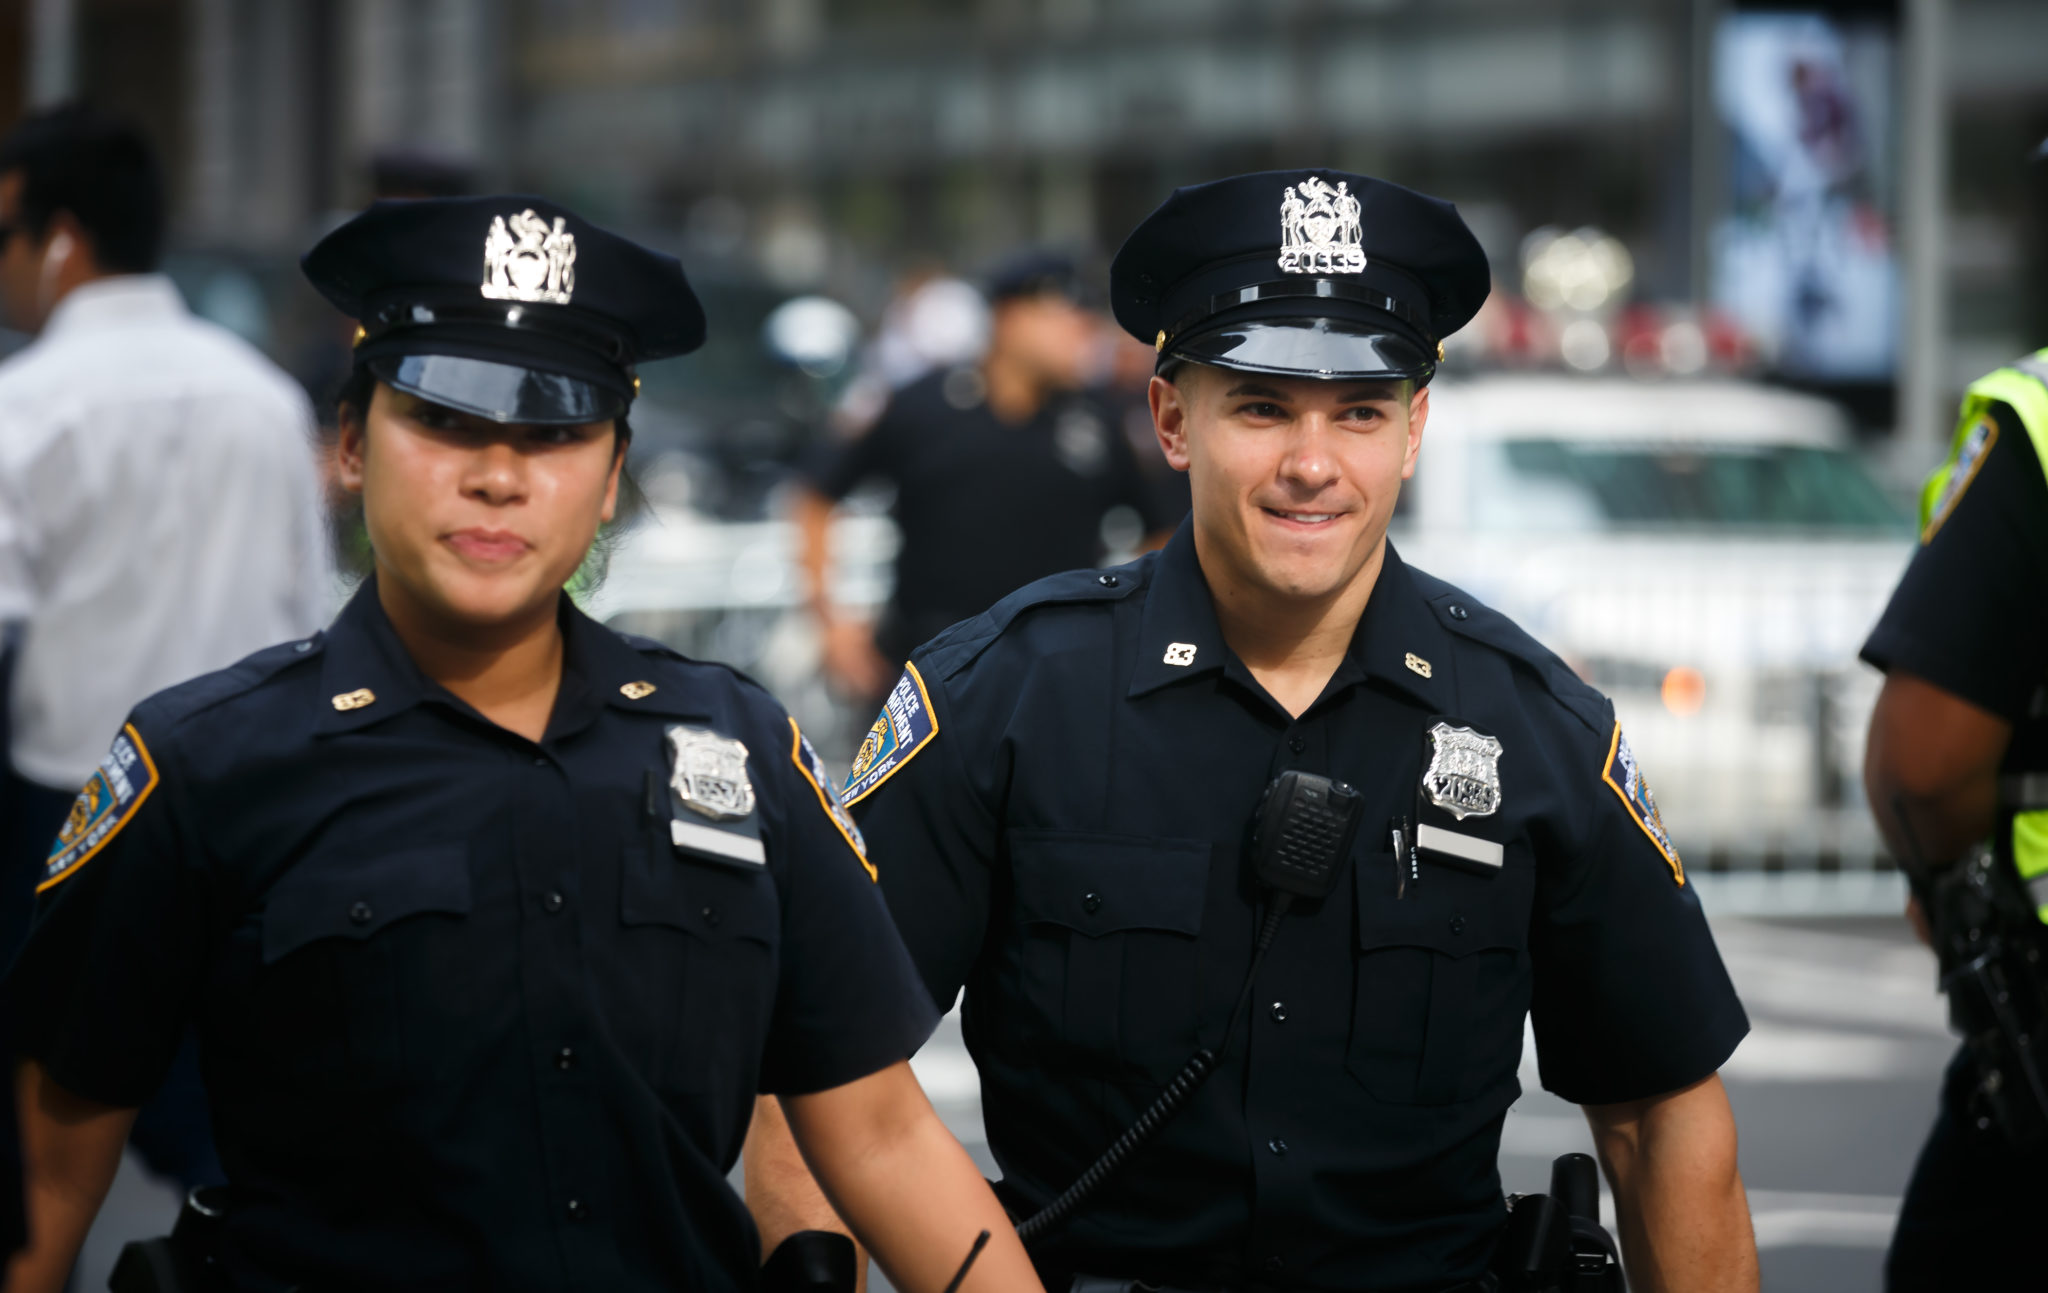 Two police officers walking | 2021 Good Cop Nominees